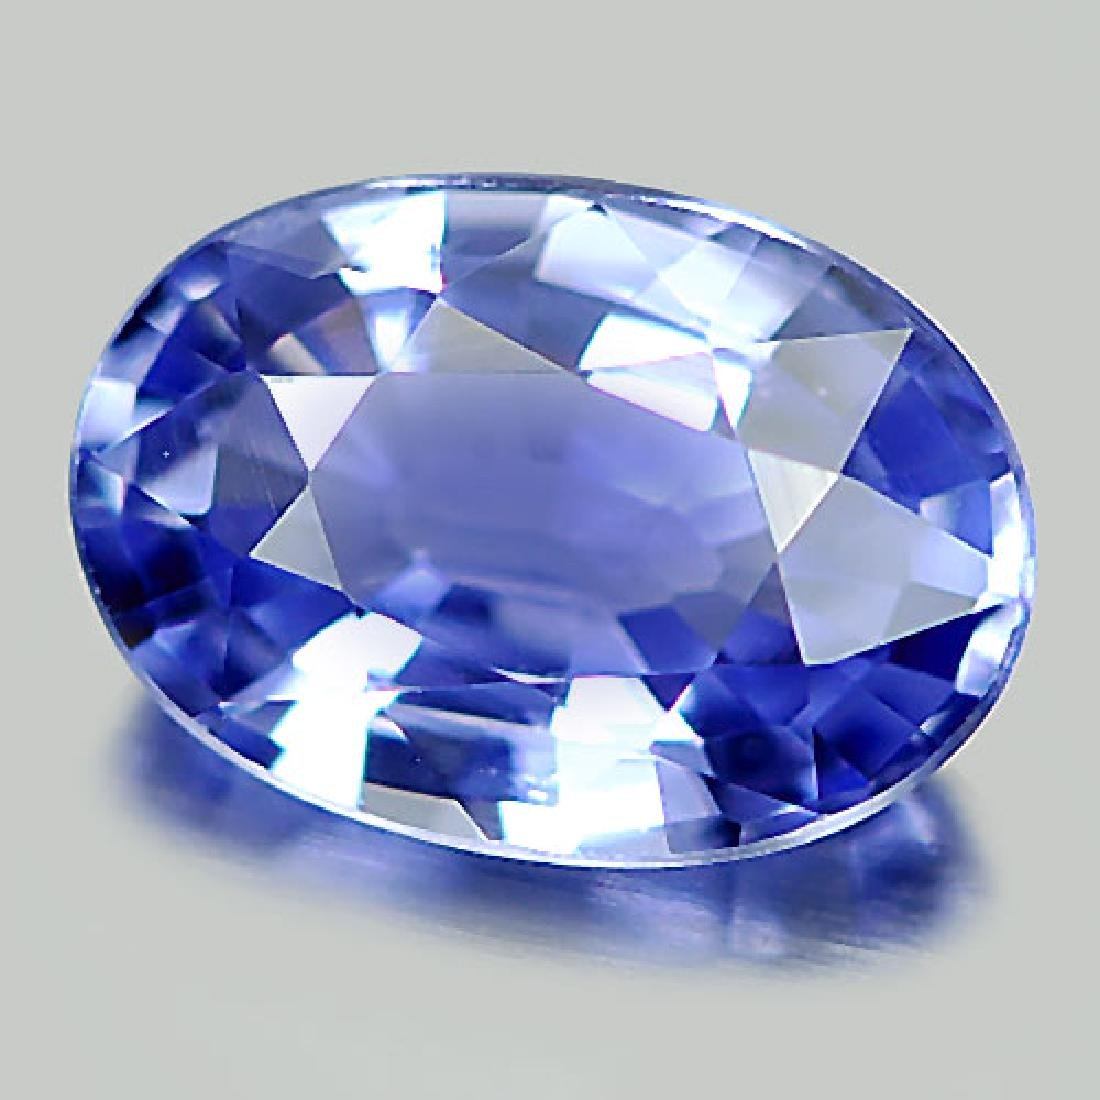 Delightful 1.06 Ct. Natural Blue Sapphire Oval Shape - 2